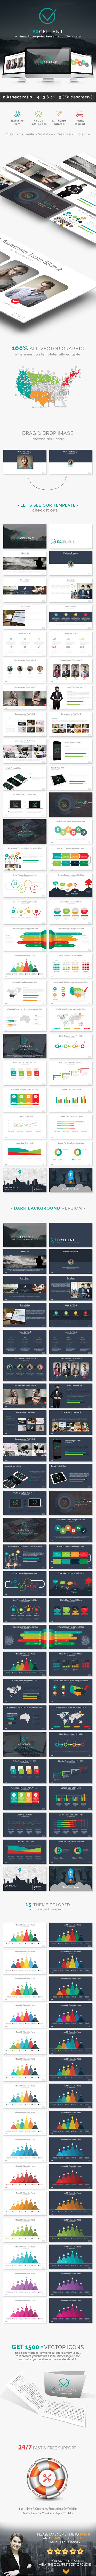 Get it now, Excellent Presentation Template is simple and modern template for multipurpose presentation business or personal use bring your company to the next level. All element are editable from a shape to colors no need another software to edit it just need a powerpoint, all presentation include a creative animation slide, handmade transition and check more detail below.